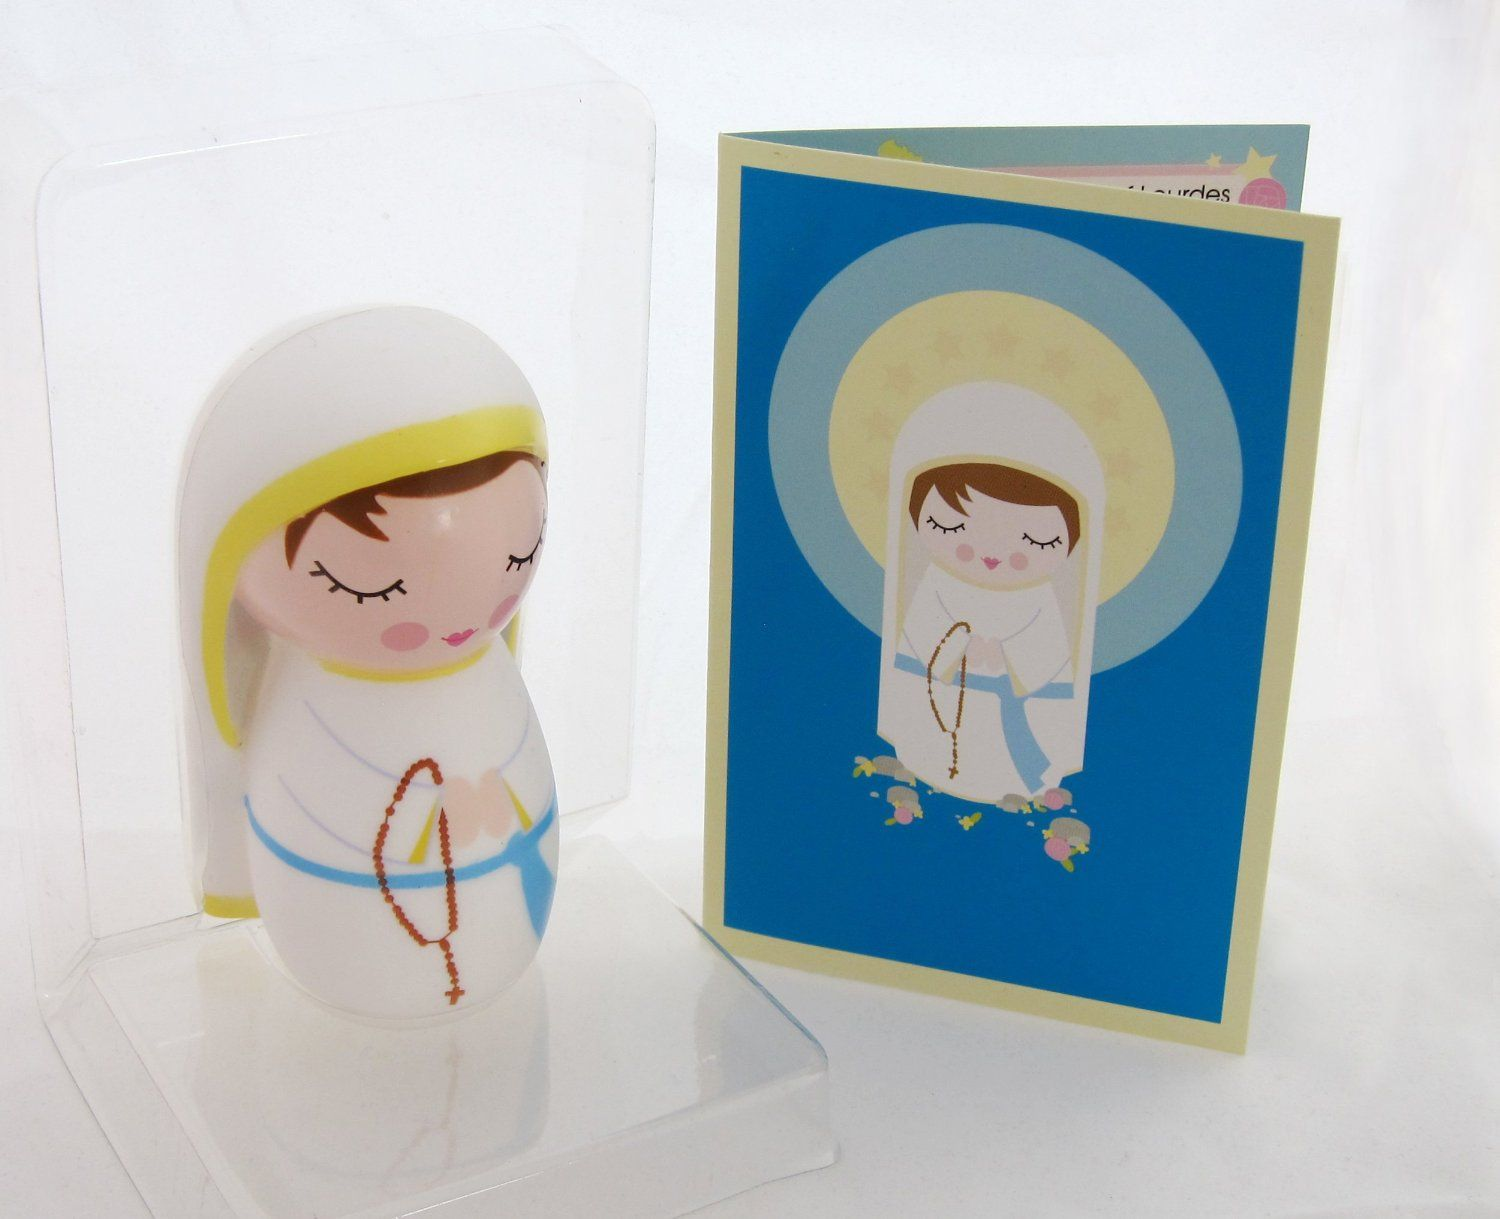 Amazon.com: Our Lady of Lourdes Collectible Vinyl Doll: Toys & Games; Collectible Catholic doll, great Christian toy! Our Lady of Lourdes of France, with prayer and story card